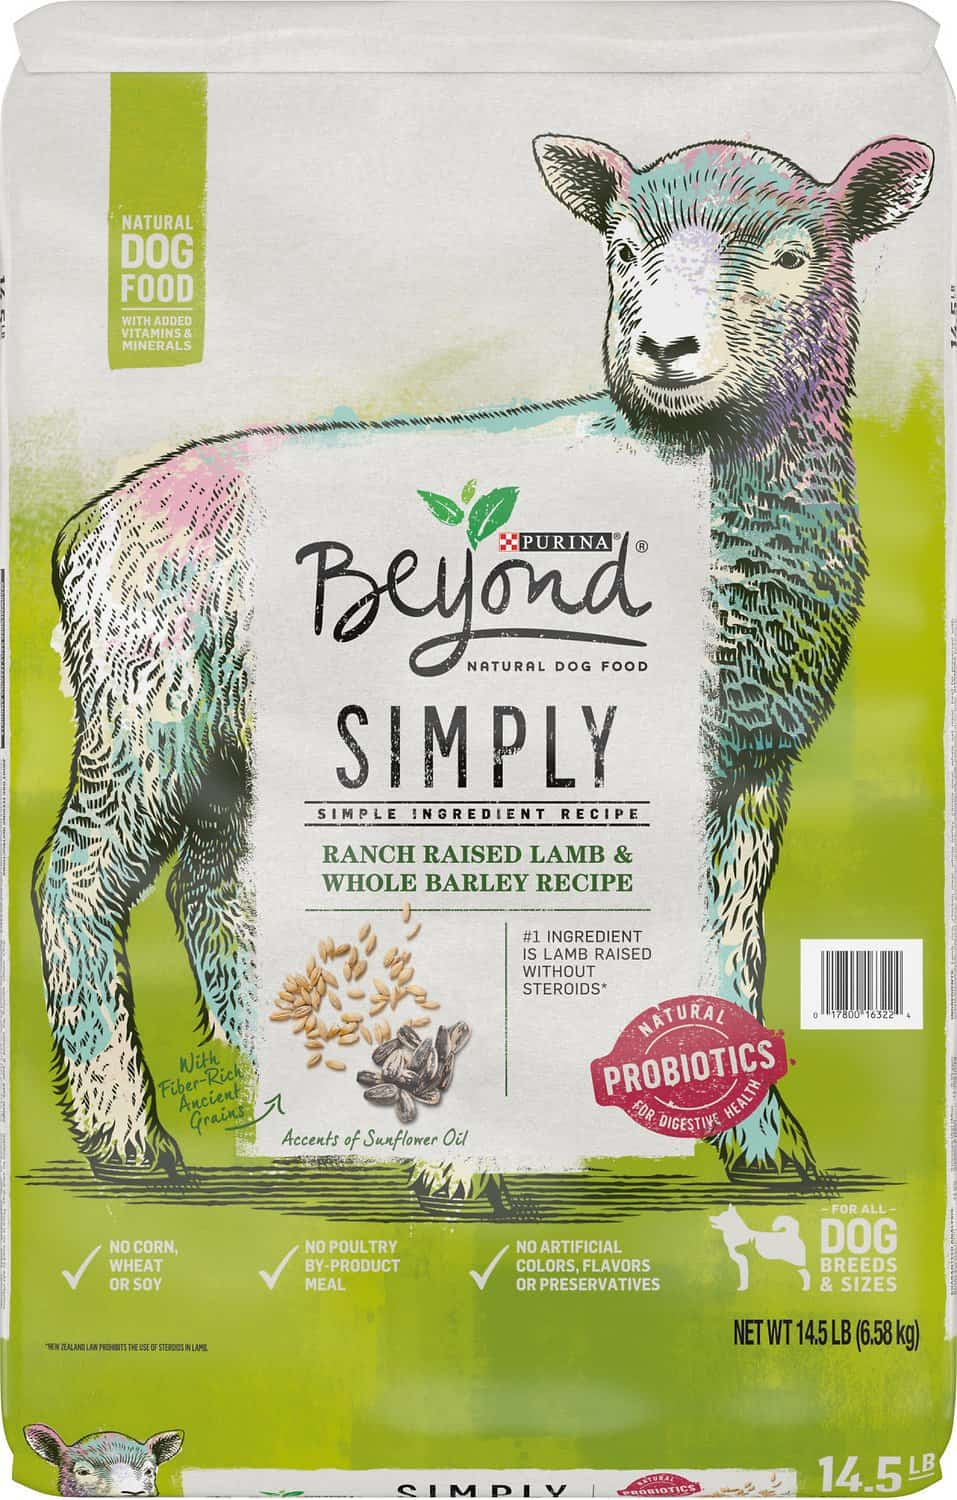 Purina Beyond Dog Food Review 2021: Best Budget Option? 14